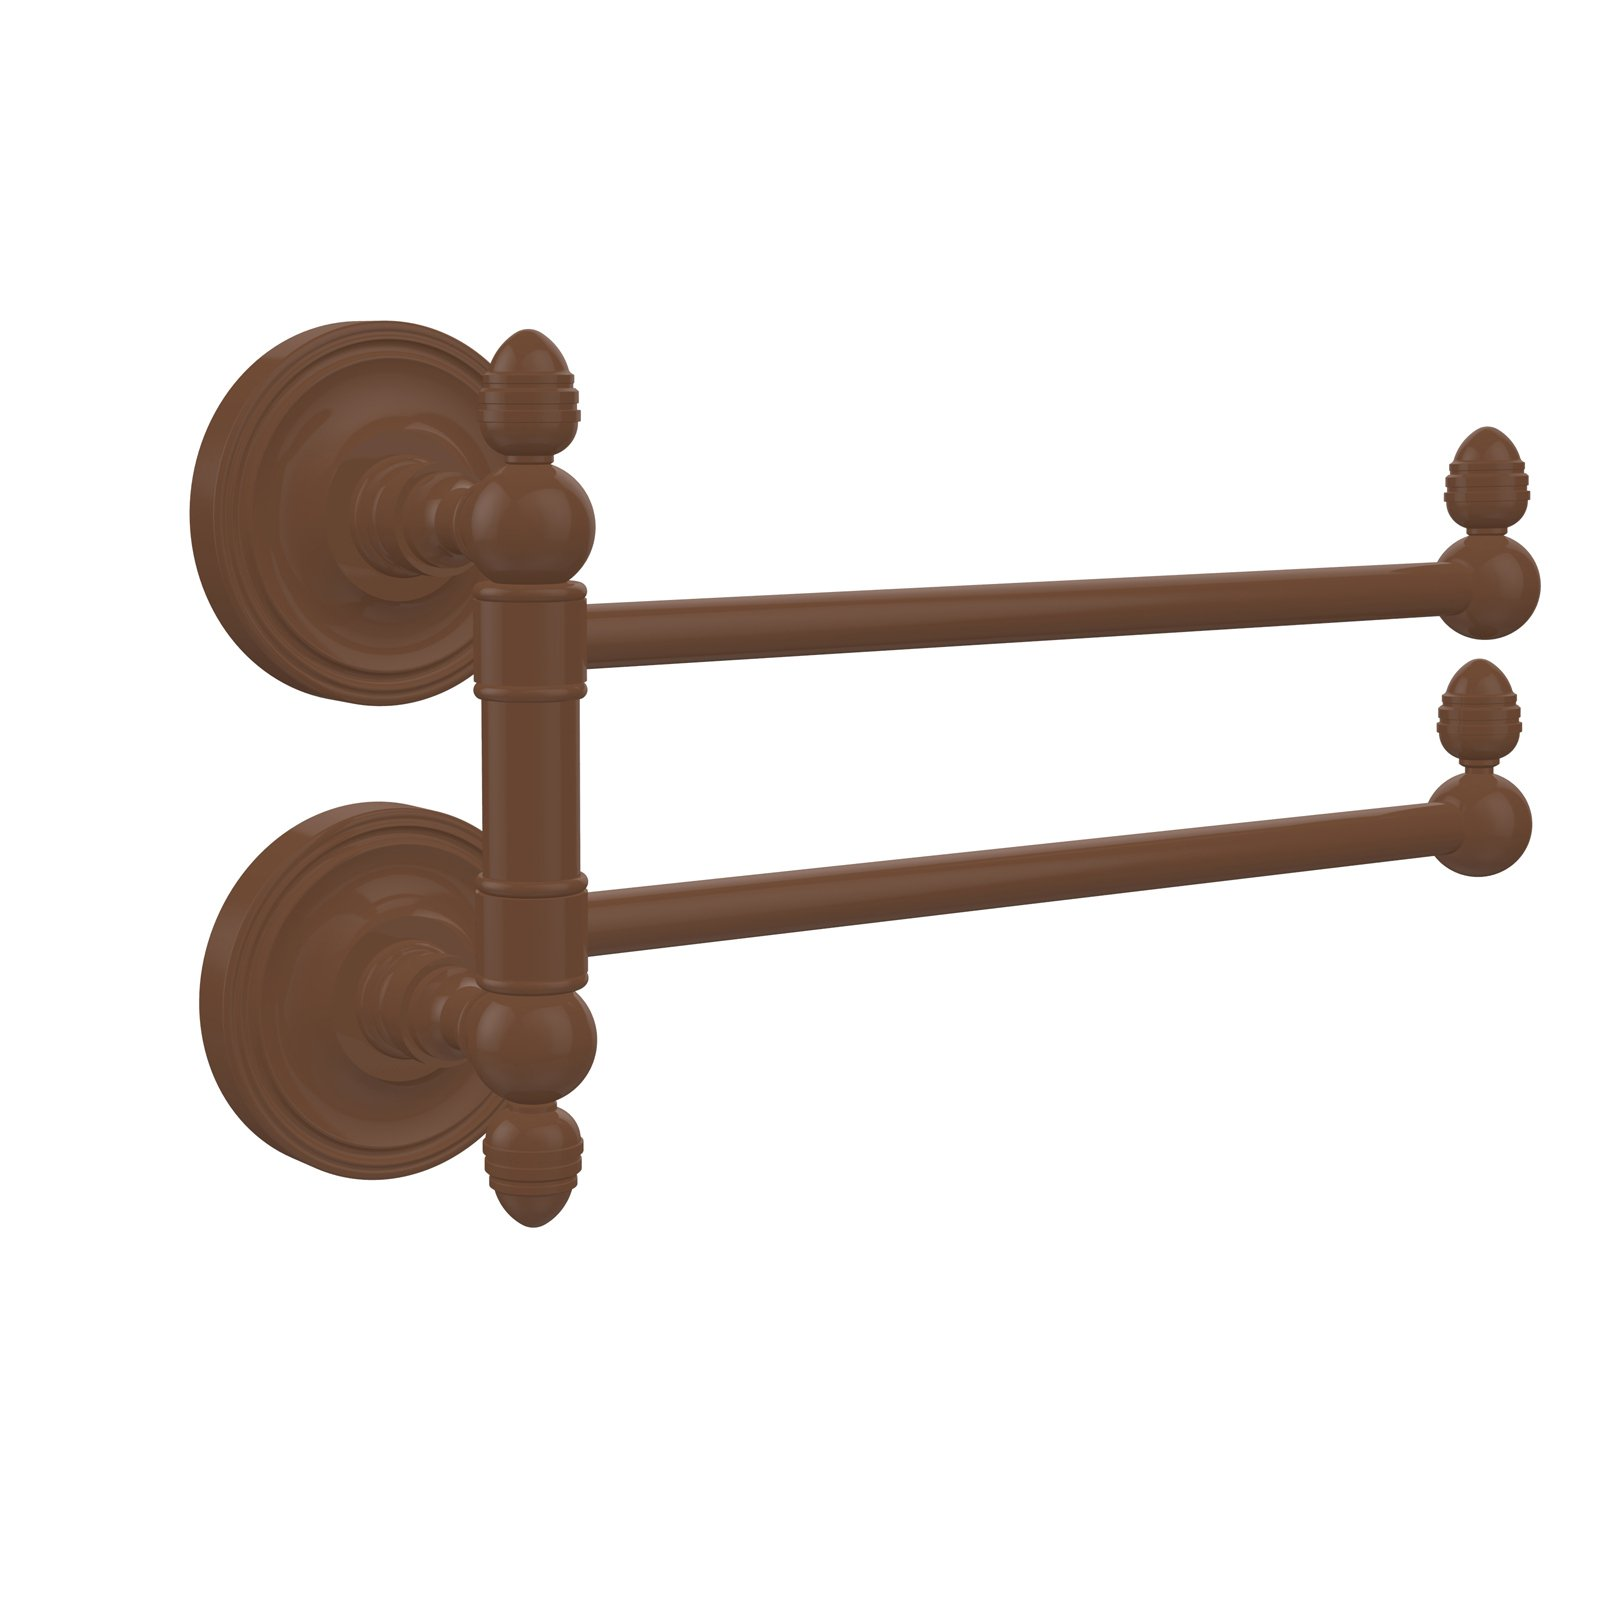 Allied Brass Prestige Regal 2 Swing Arm Towel Rail